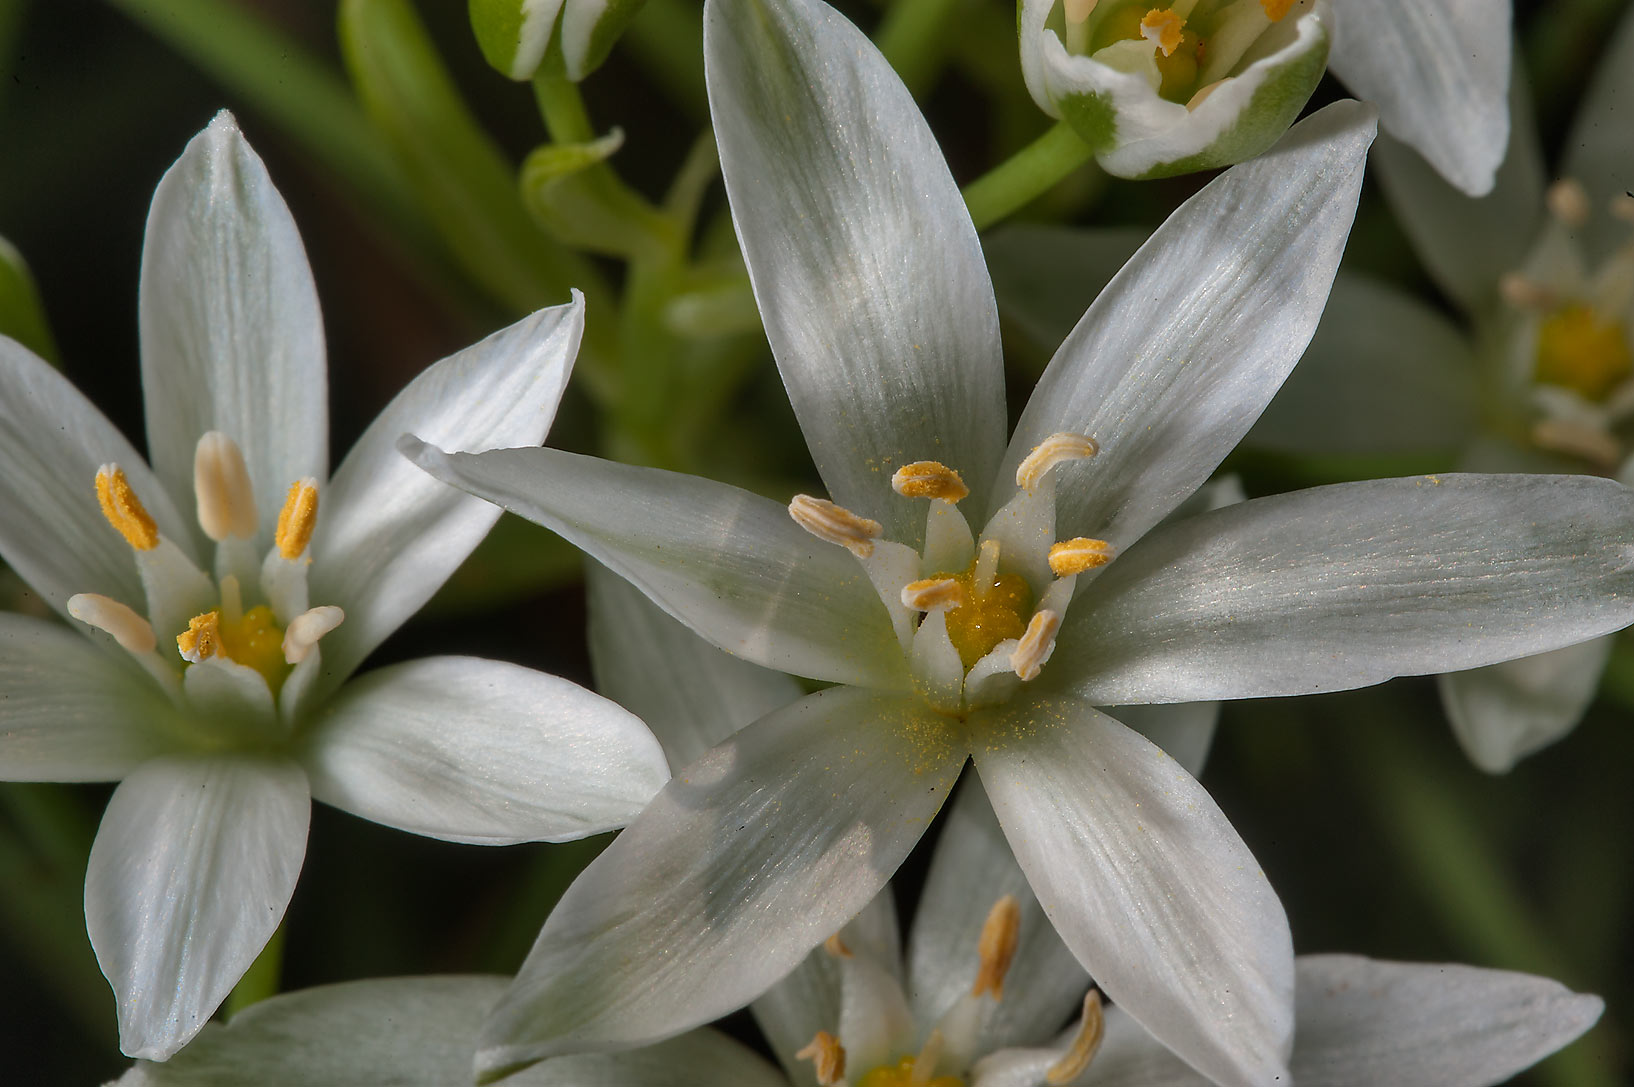 White flowers of grass lily (Ornithogalum...Institute. St.Petersburg, Russia